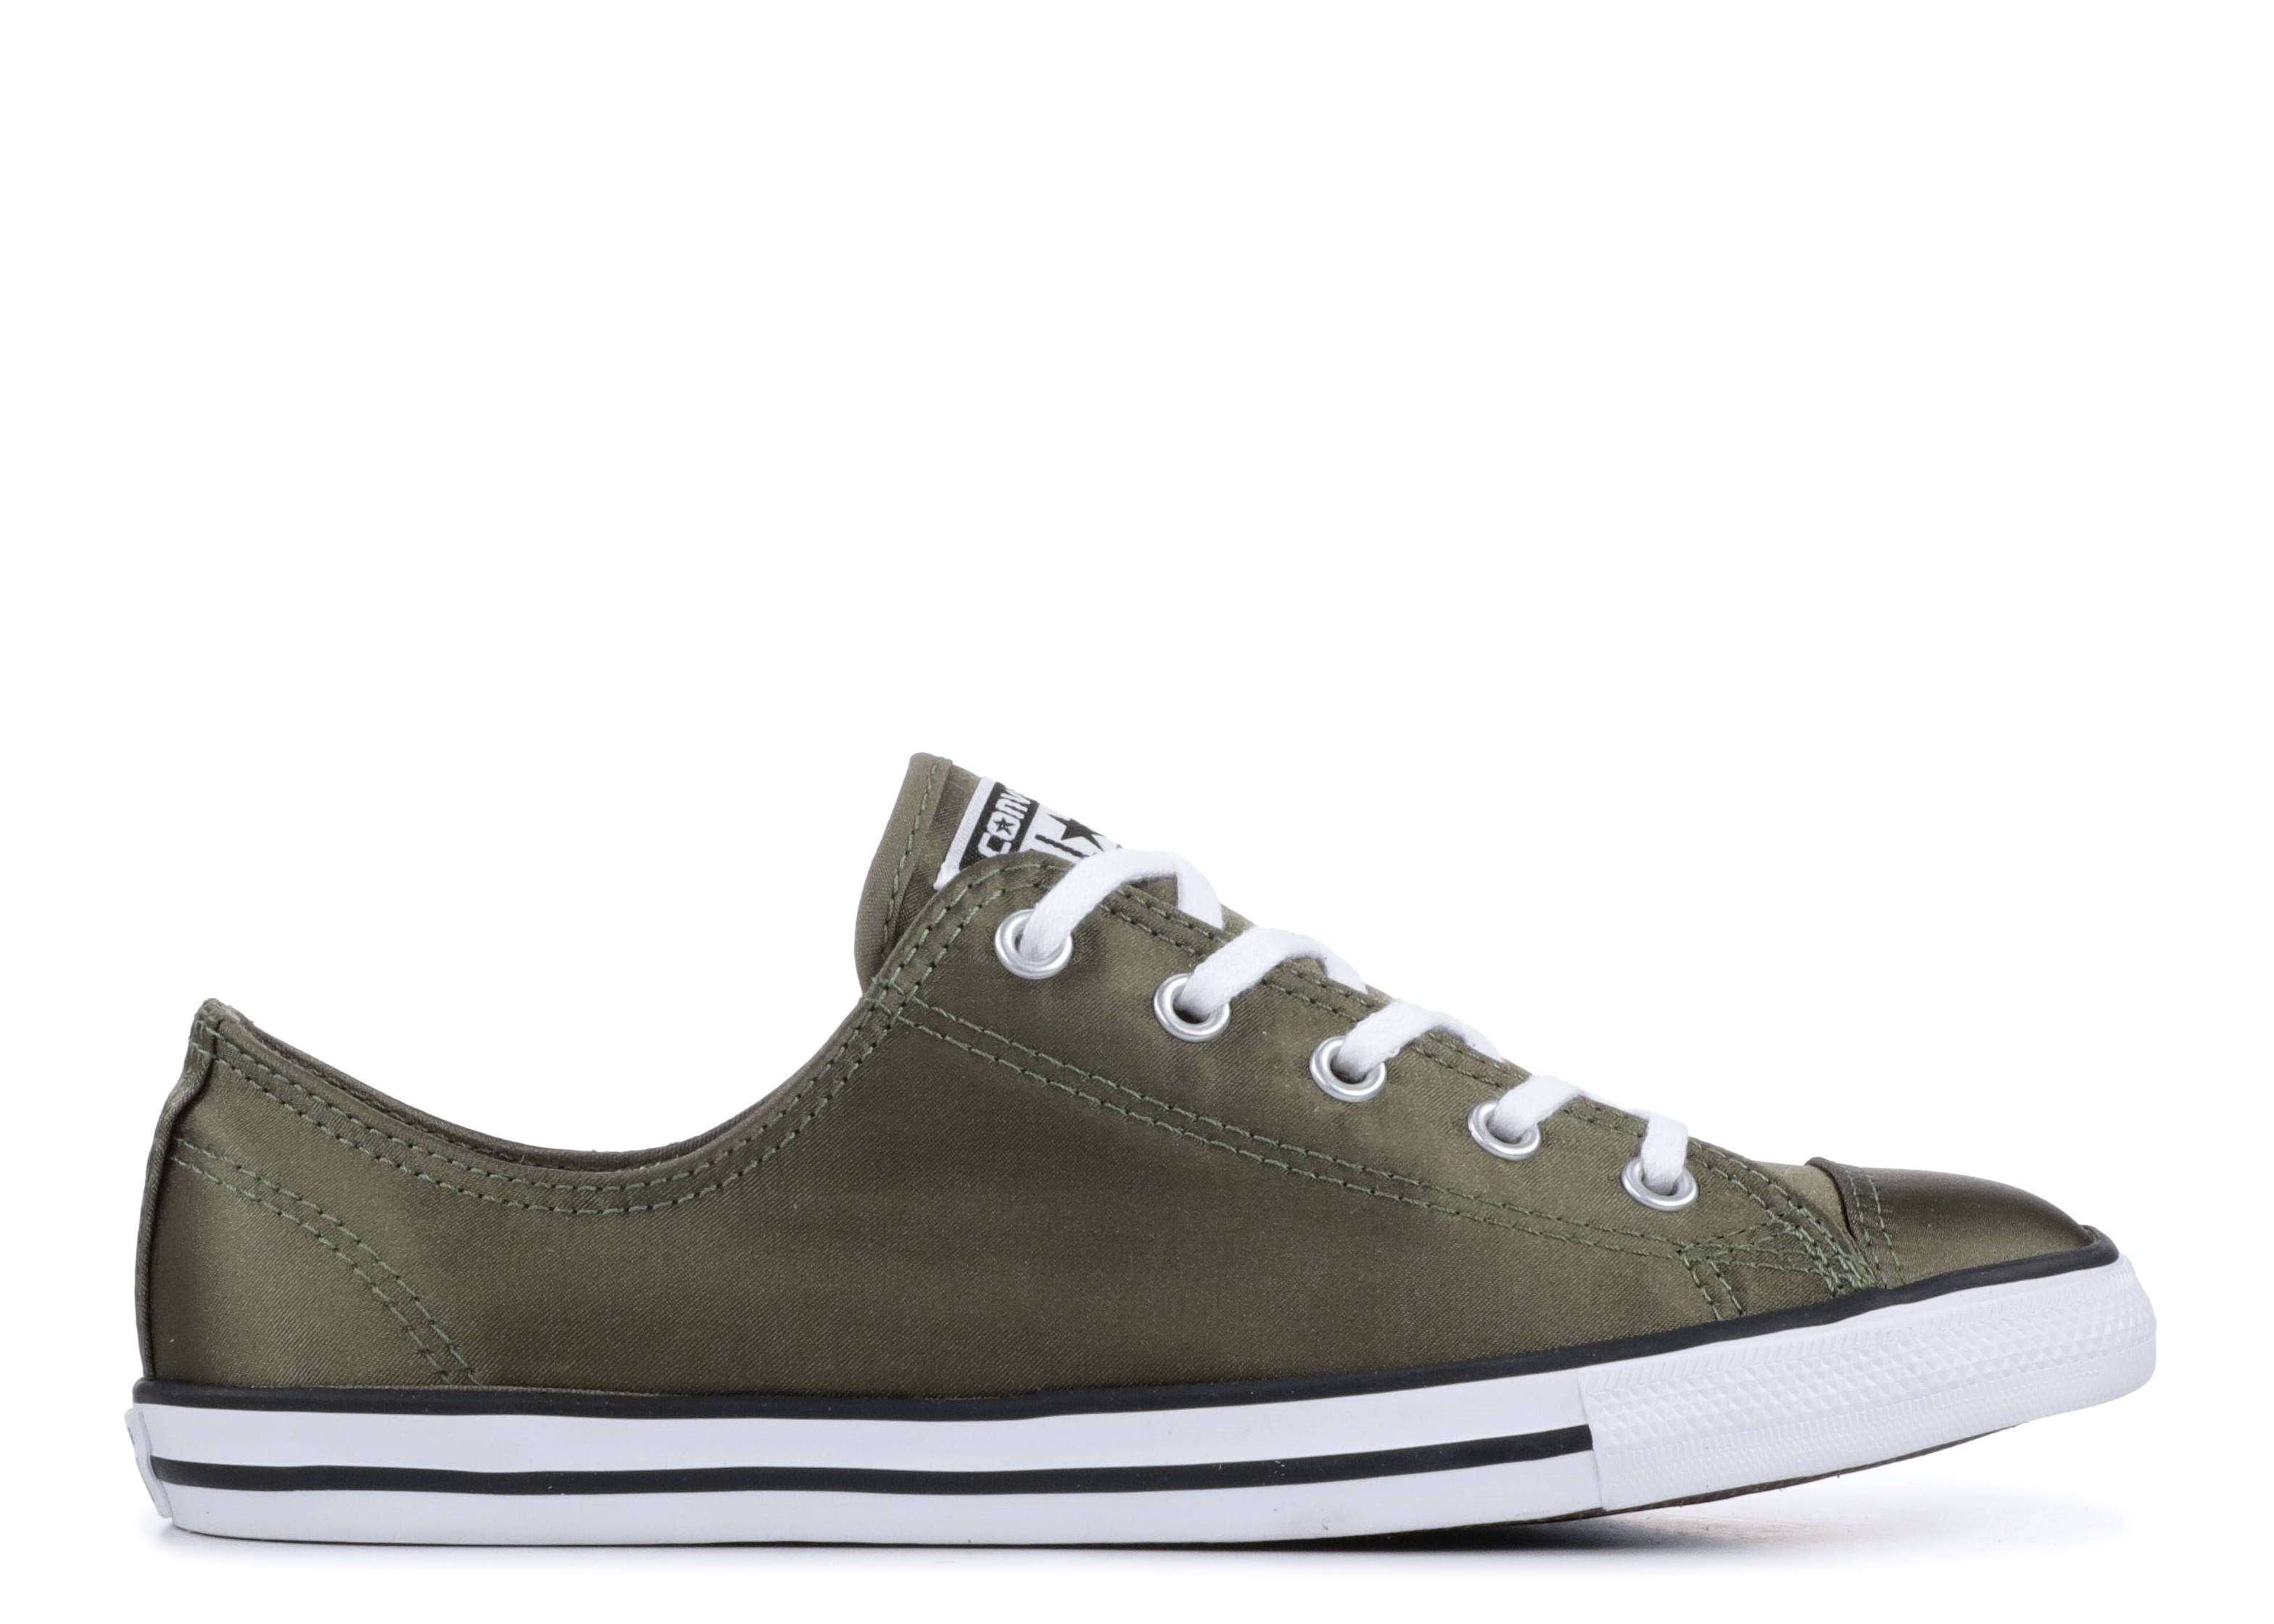 Wmns Chuck Taylor All Star Dainty Low